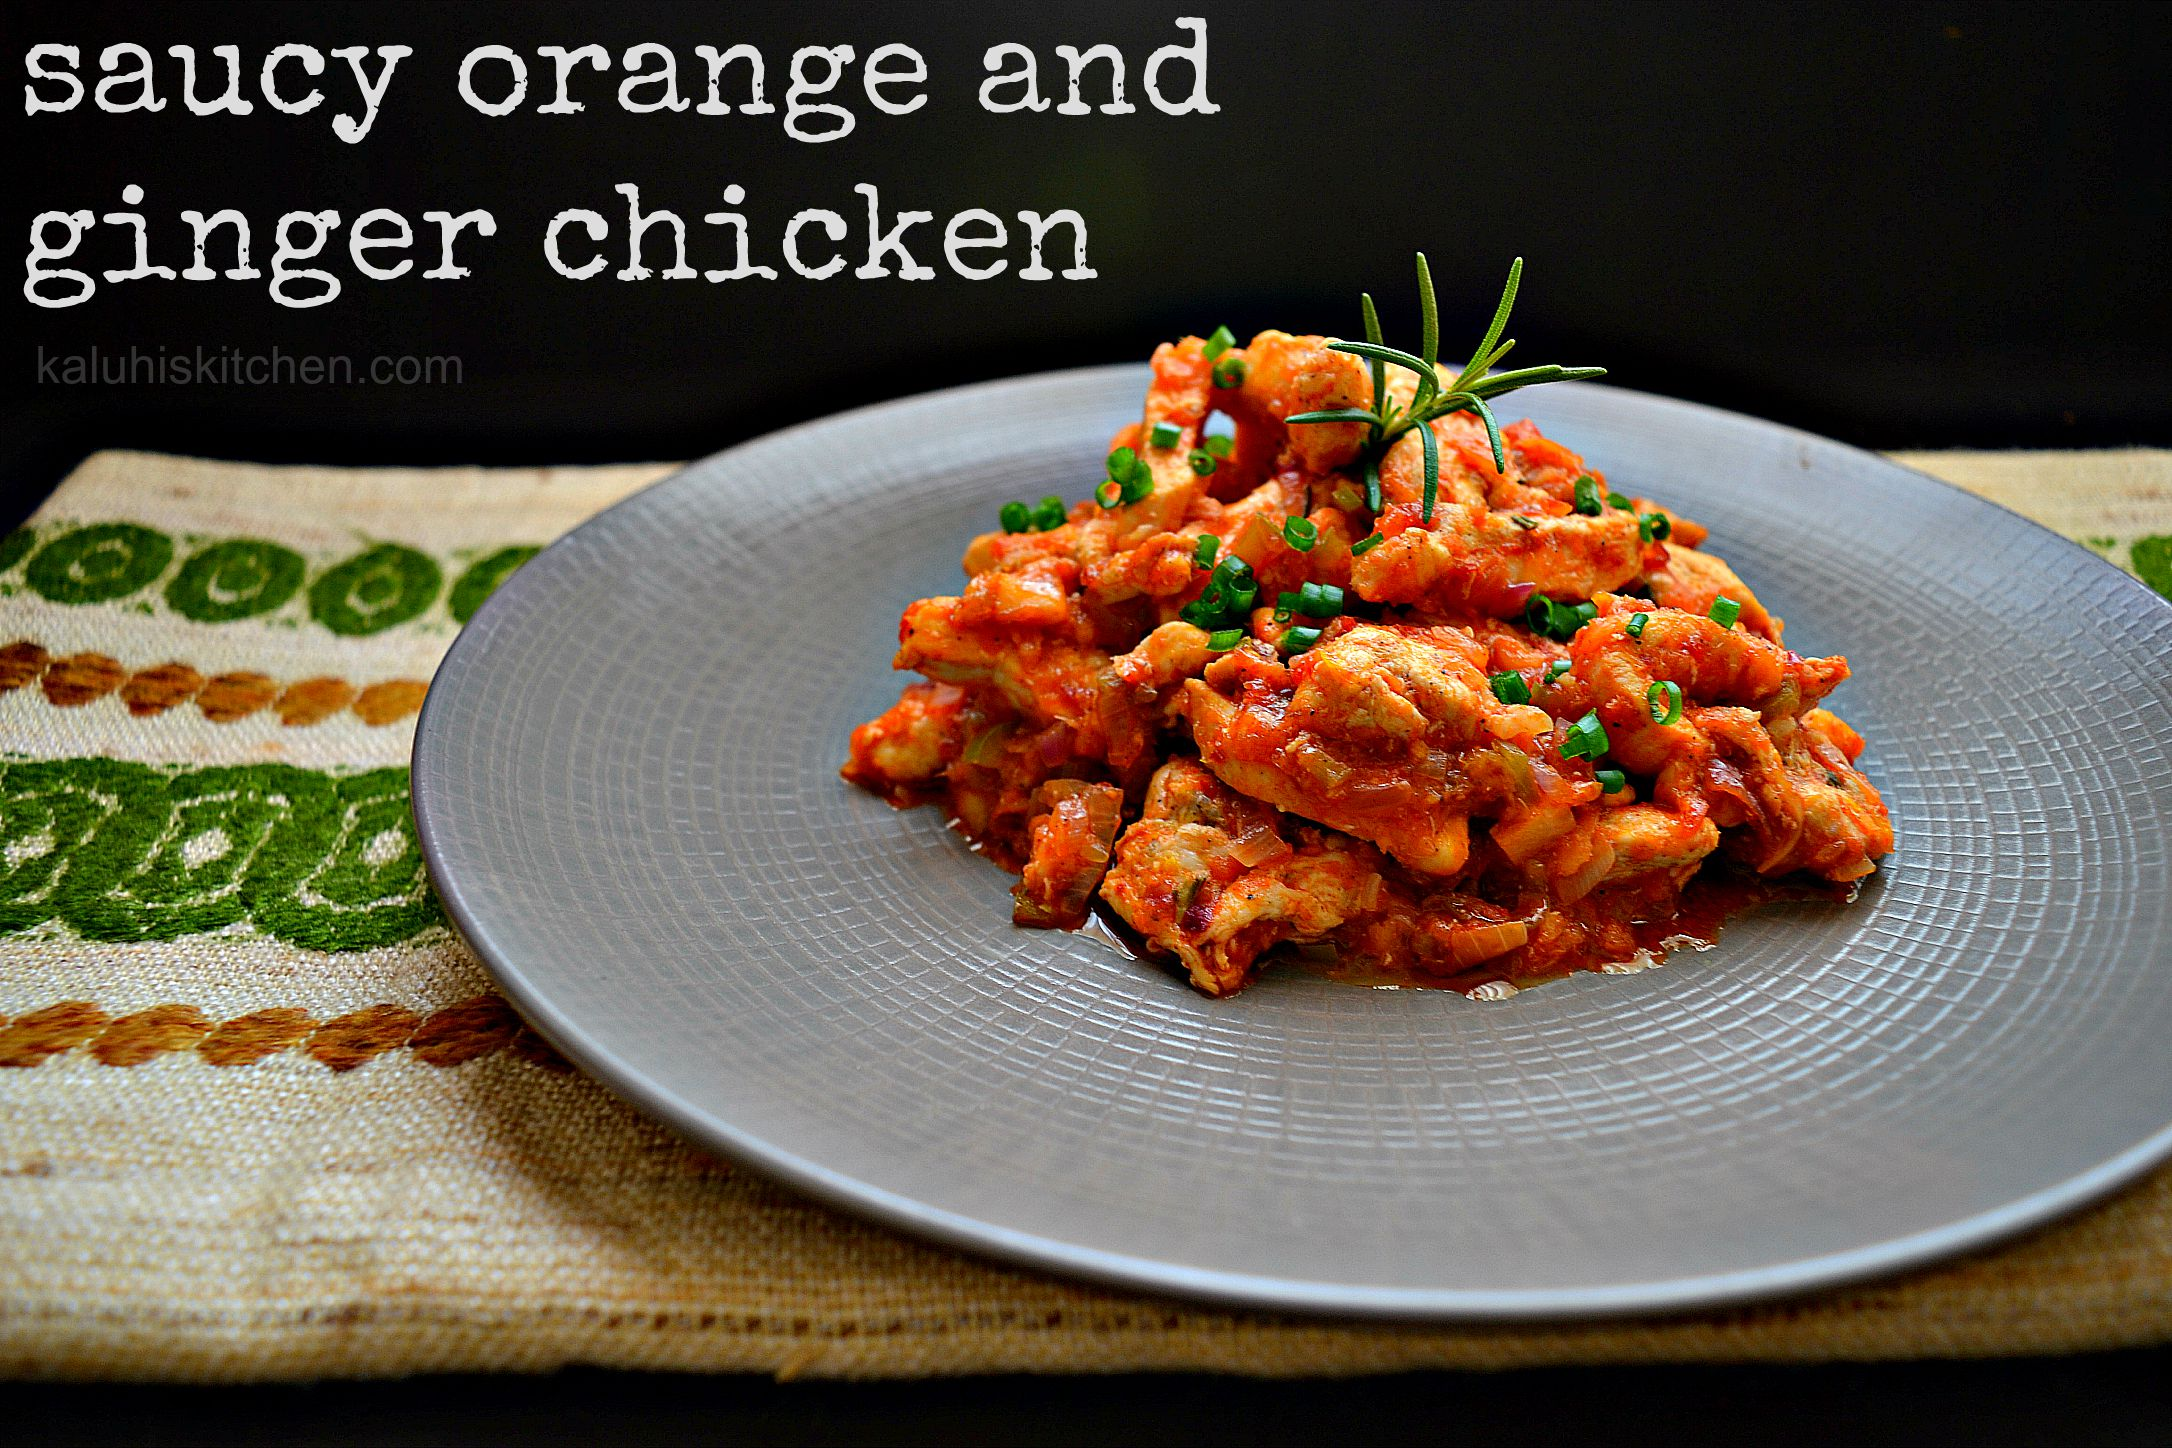 saucy orange and ginger chicken_kaluhiskitchen,com_best chicken recipes_best kenyan food blog